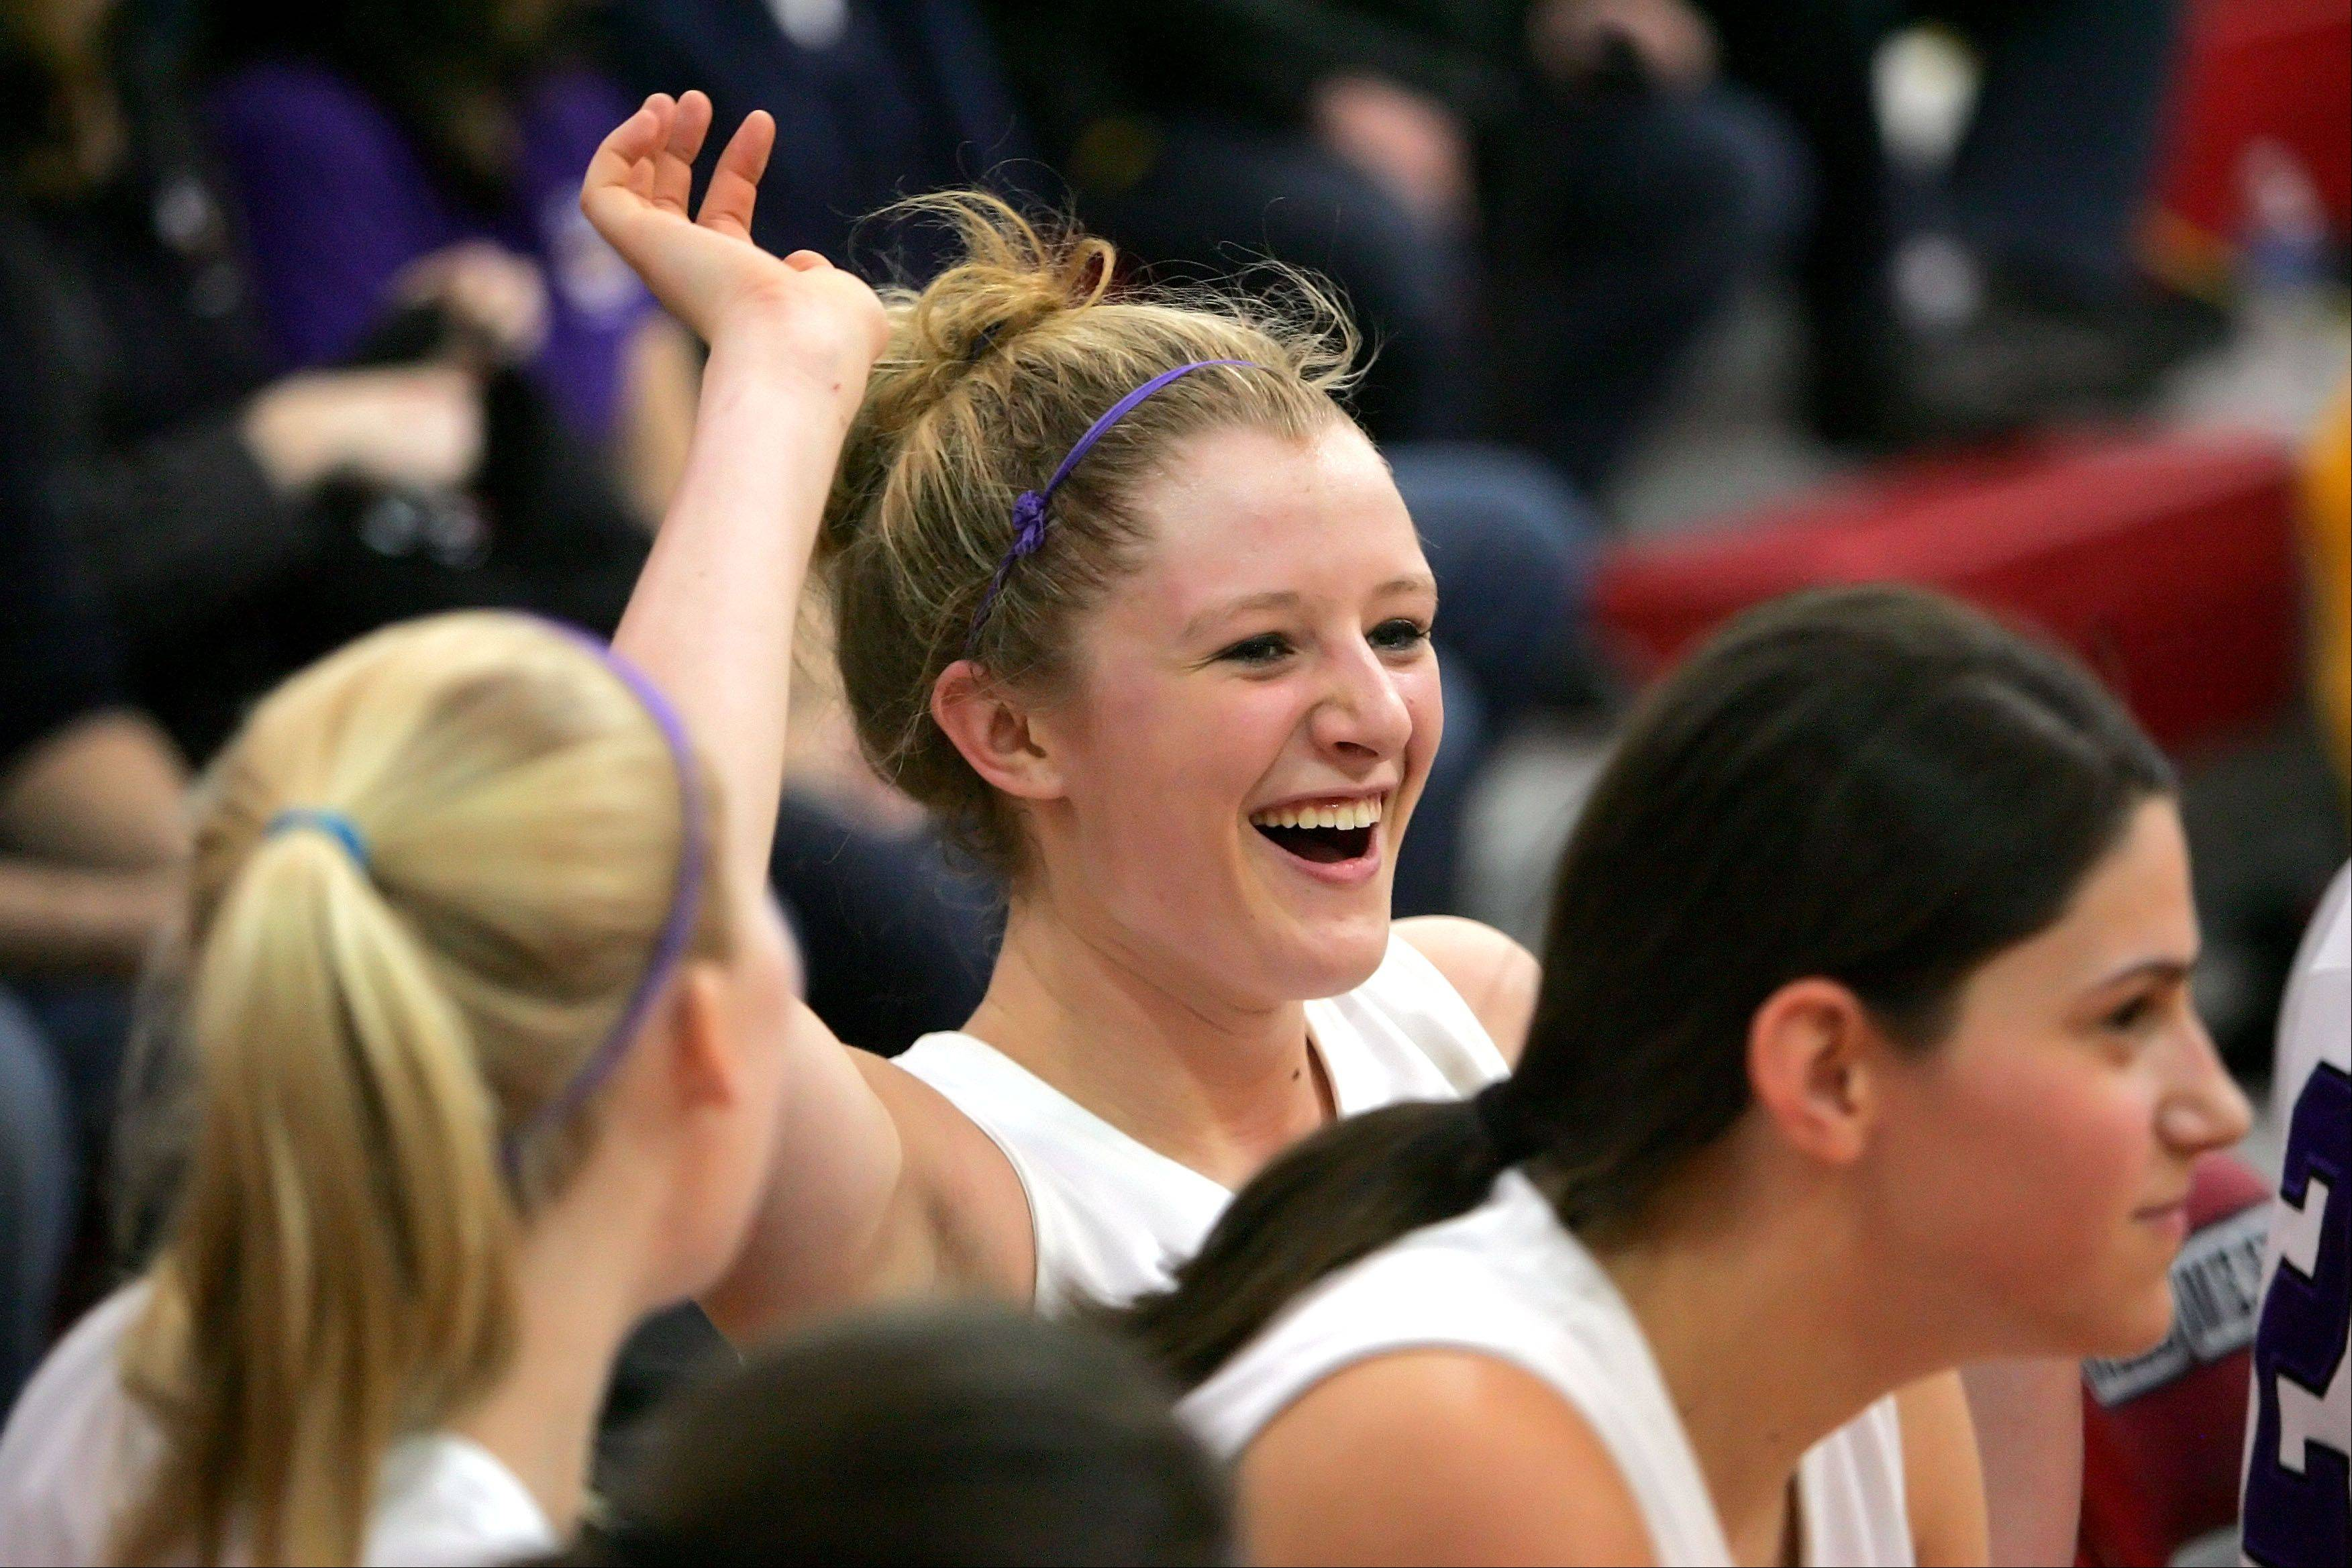 Rolling Meadows' Jenny Vliet celebrates with teammates on the bench in Class 4A Niles West supersectional play Monday night in Skokie.